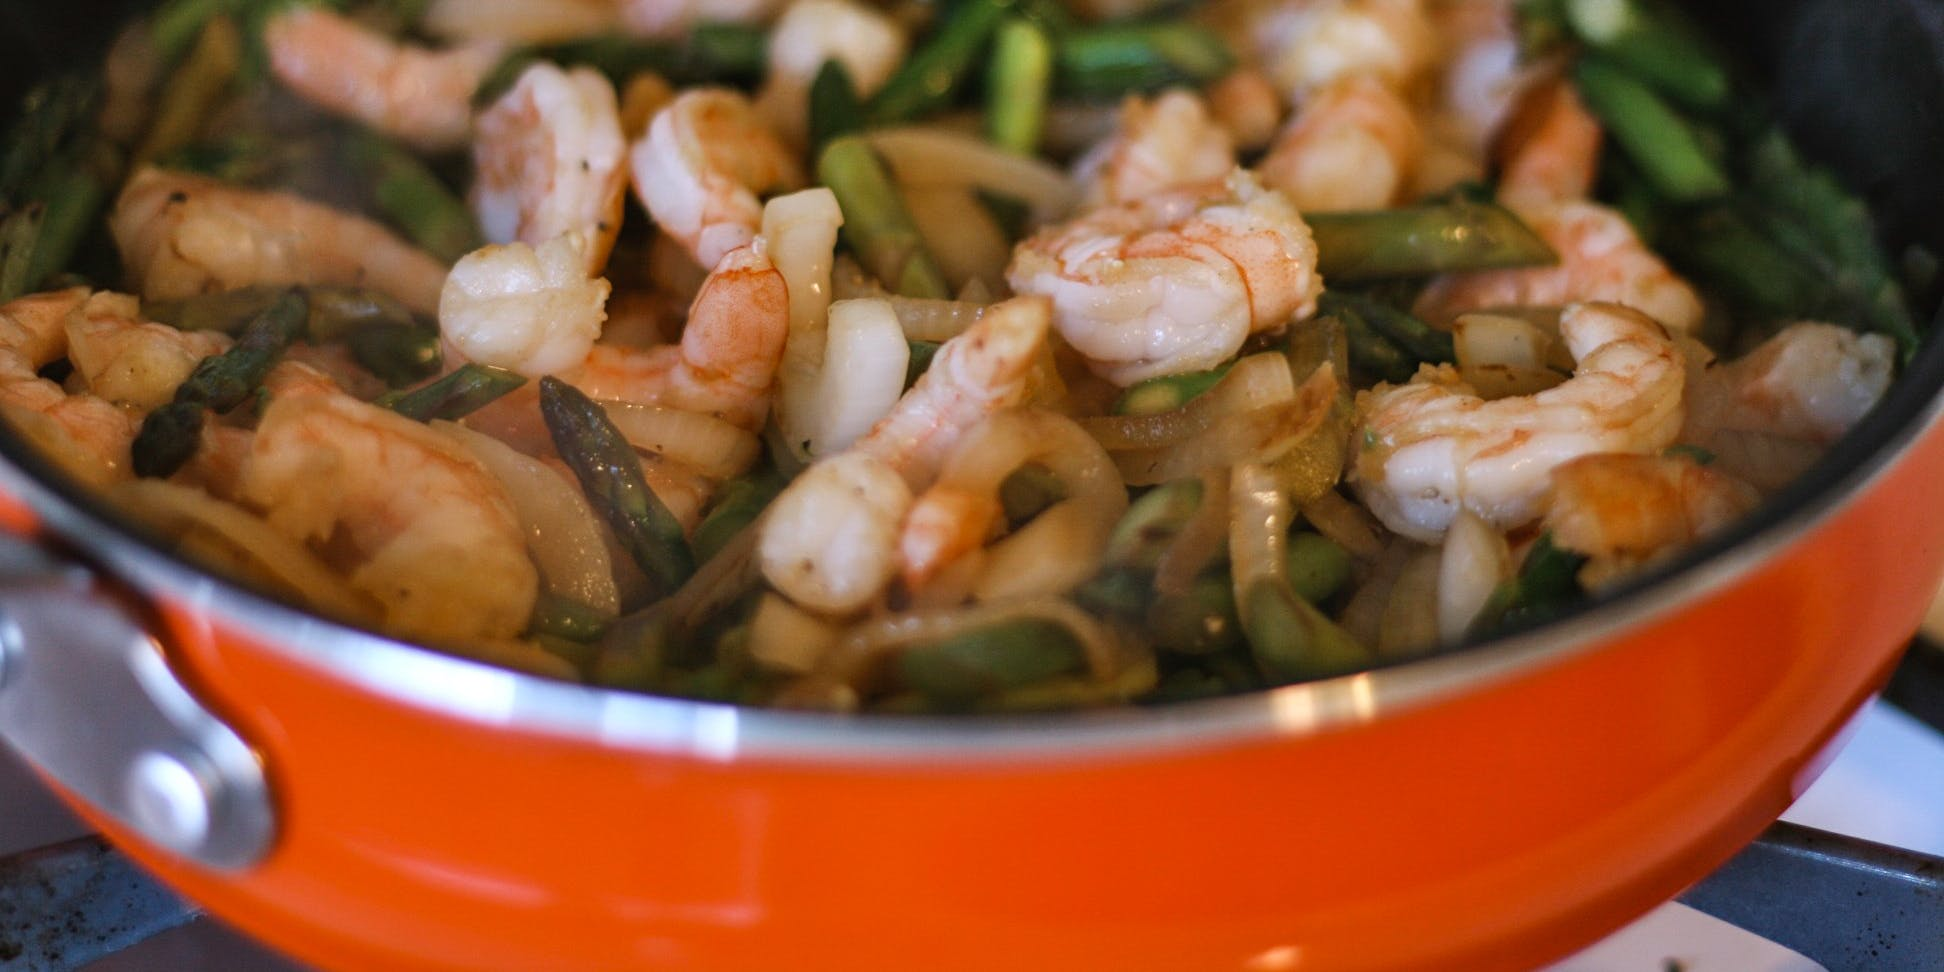 How To Make Cannabis Infused Super Shrimp Stir Fry | HERB Recipe